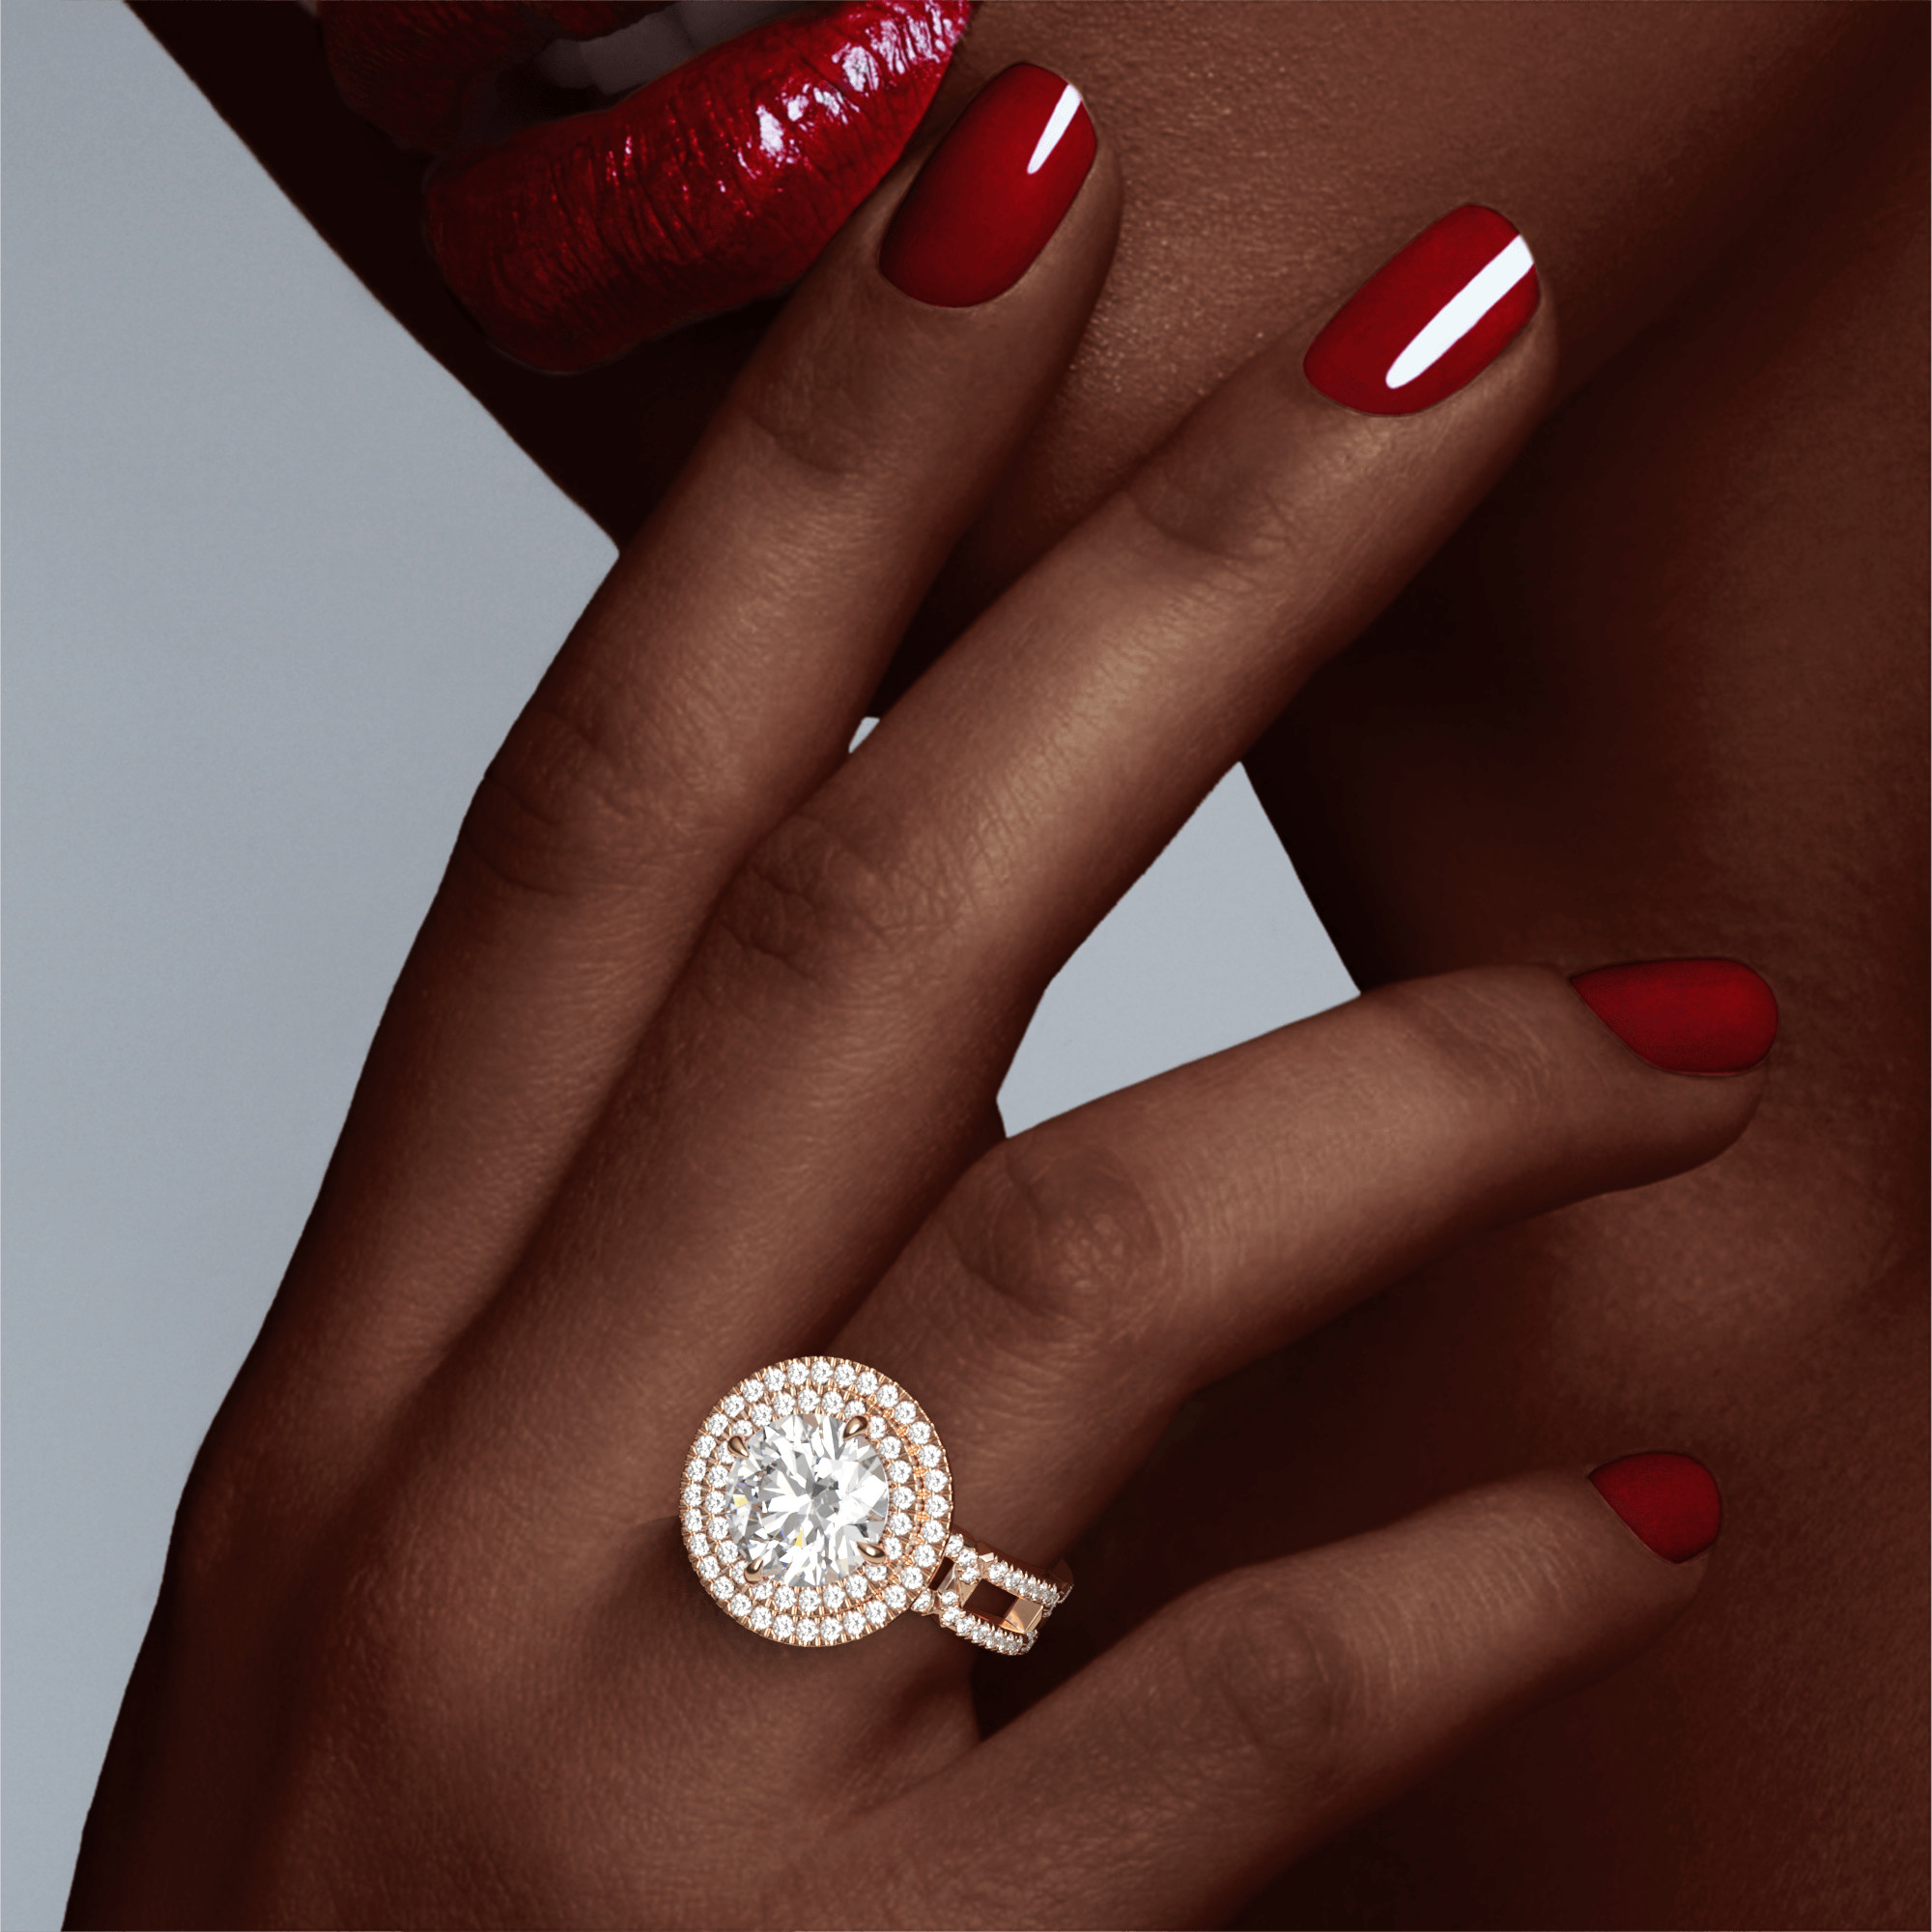 ROUND CUT, DOUBLE HALO SETTING, 8 PAVE LINKS, 18K ROSE GOLD